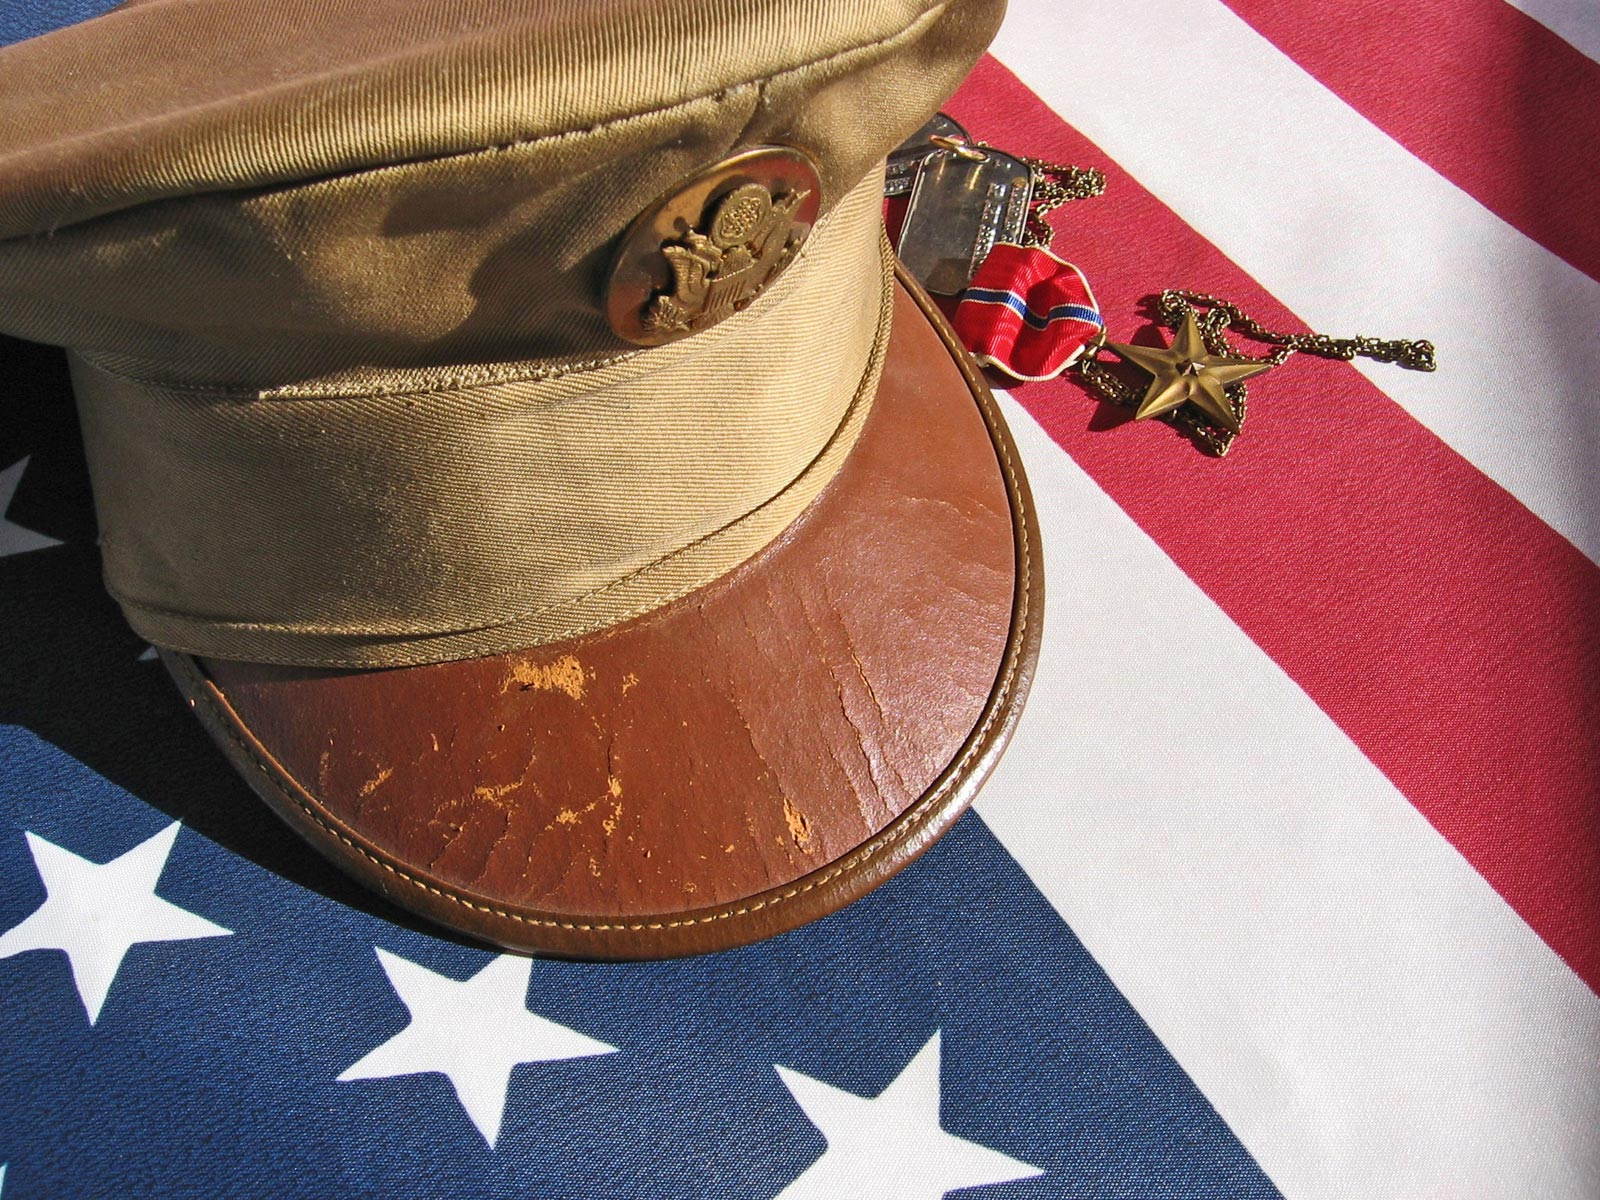 free memorial day powerpoint templates download | powerpoint tips, Powerpoint templates